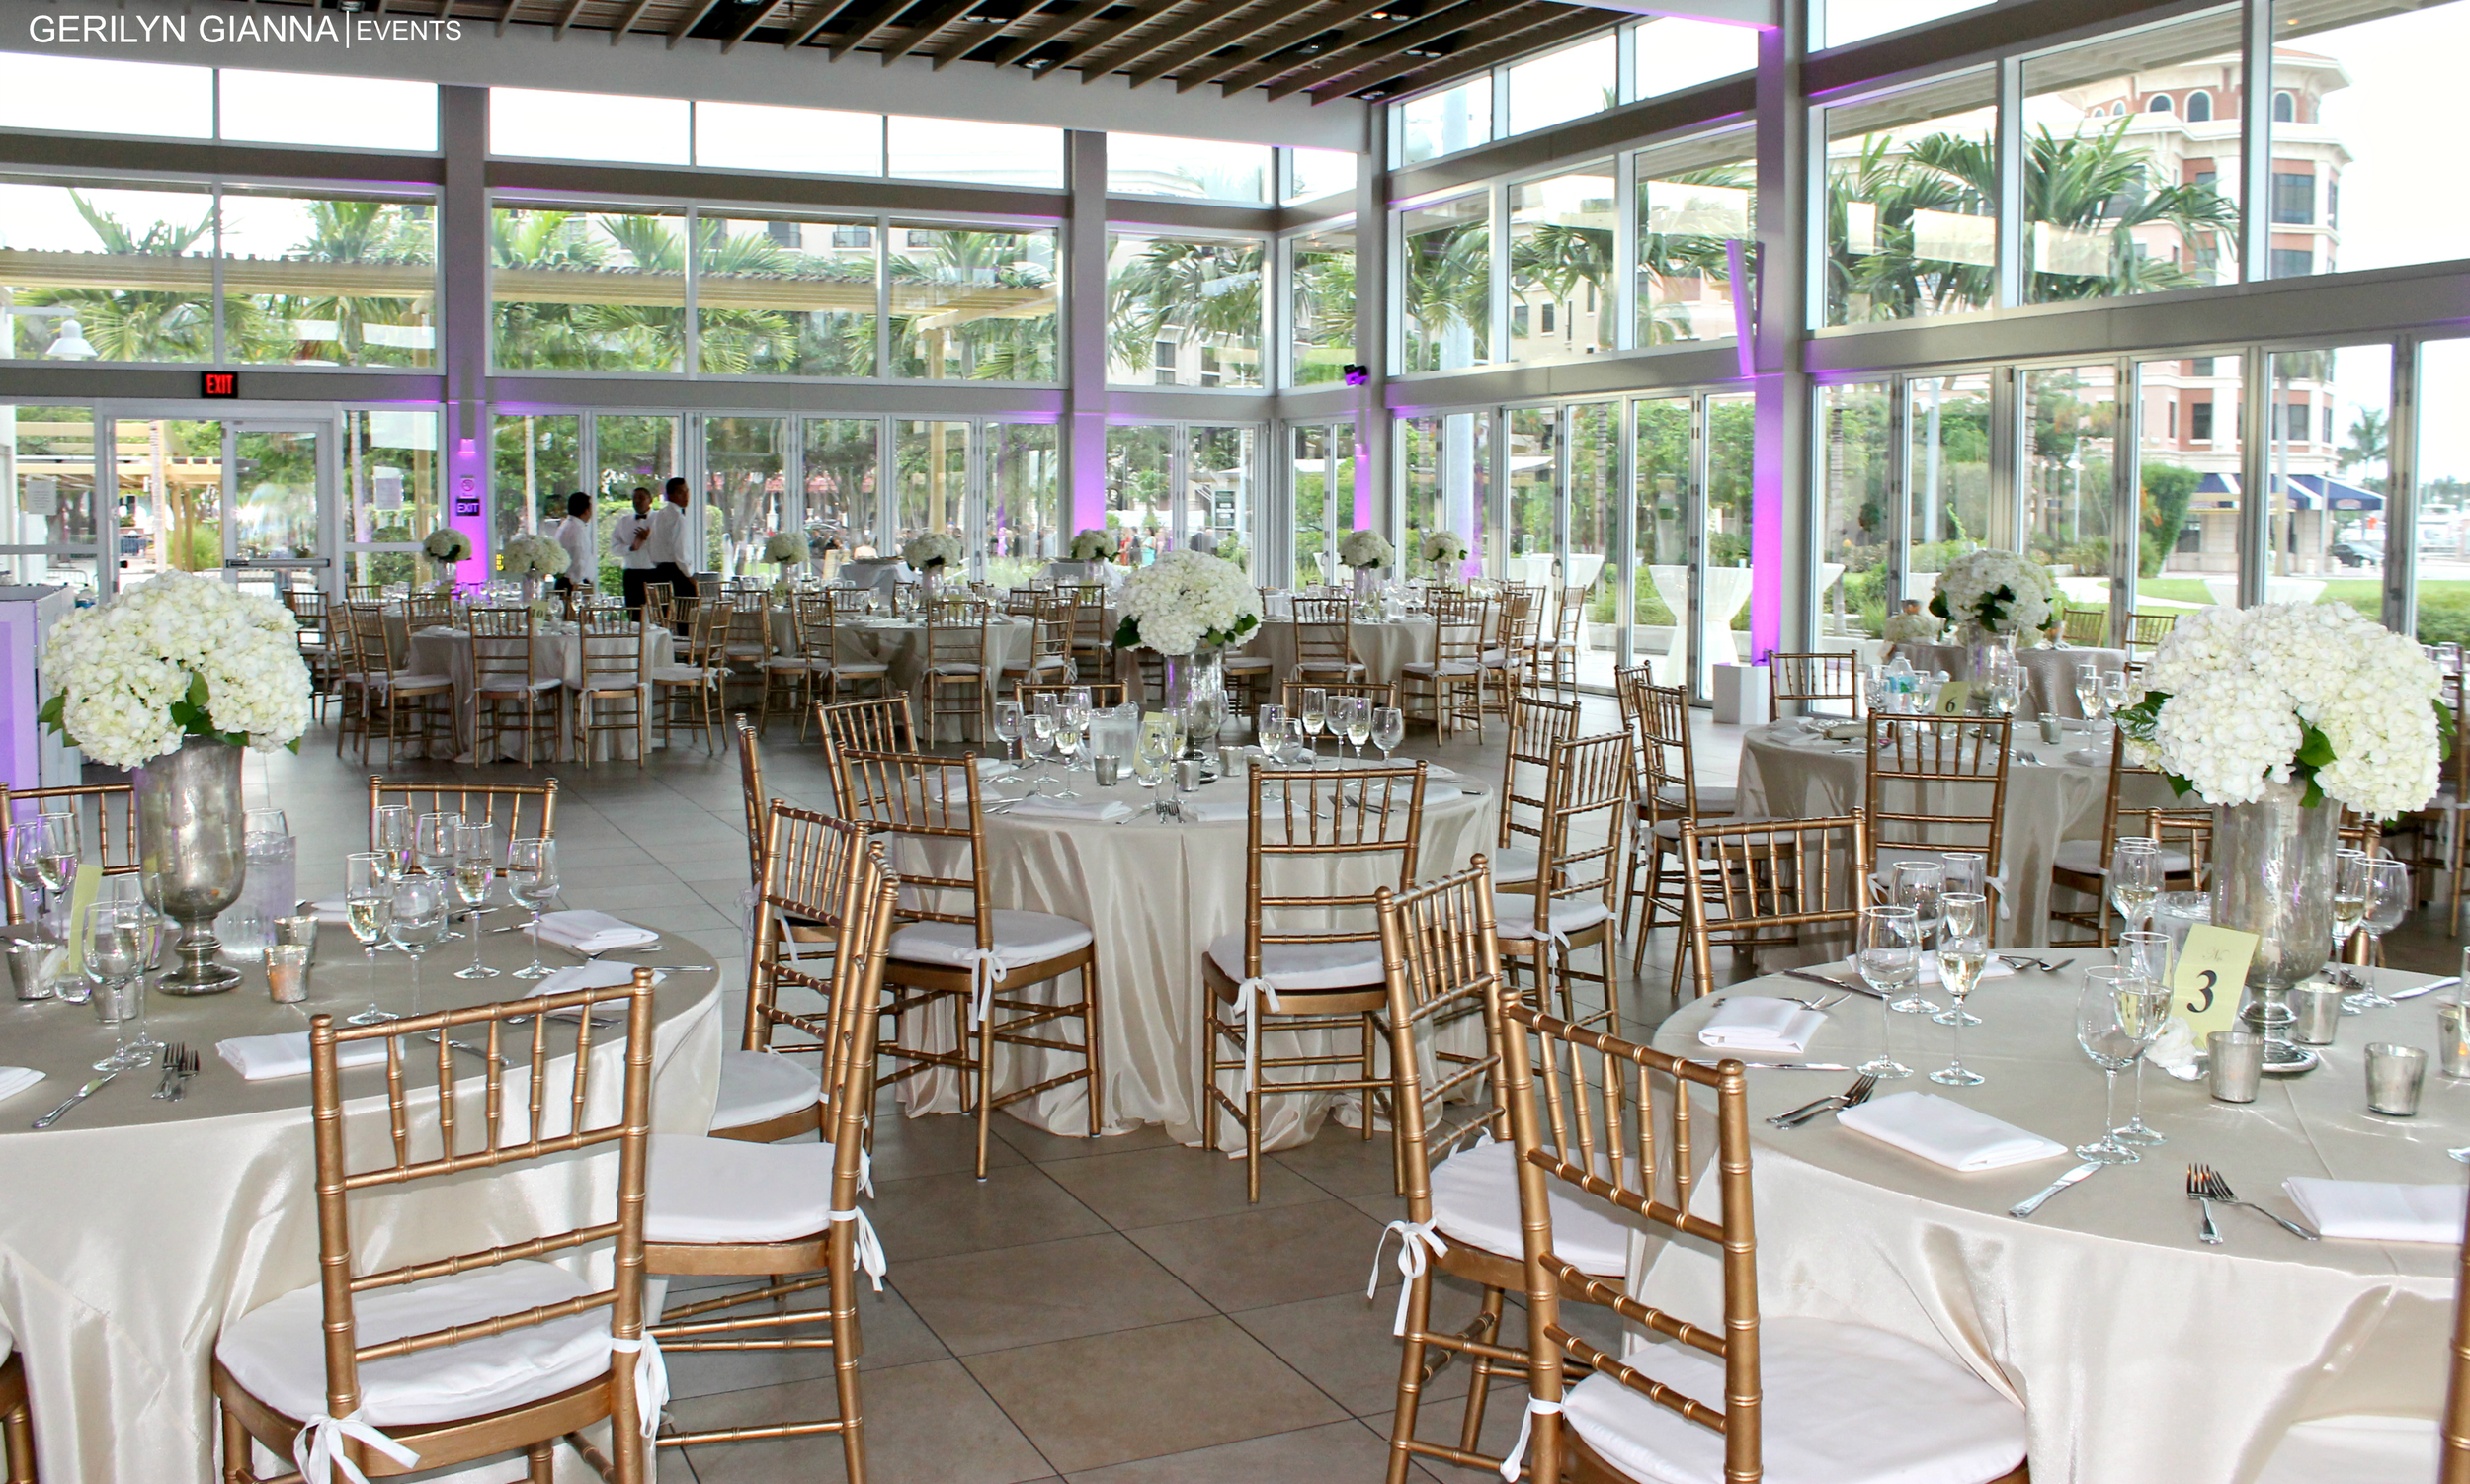 West Palm Beach Waterfront Pavilion Reception | Gerilyn Gianna Event and Floral Design |